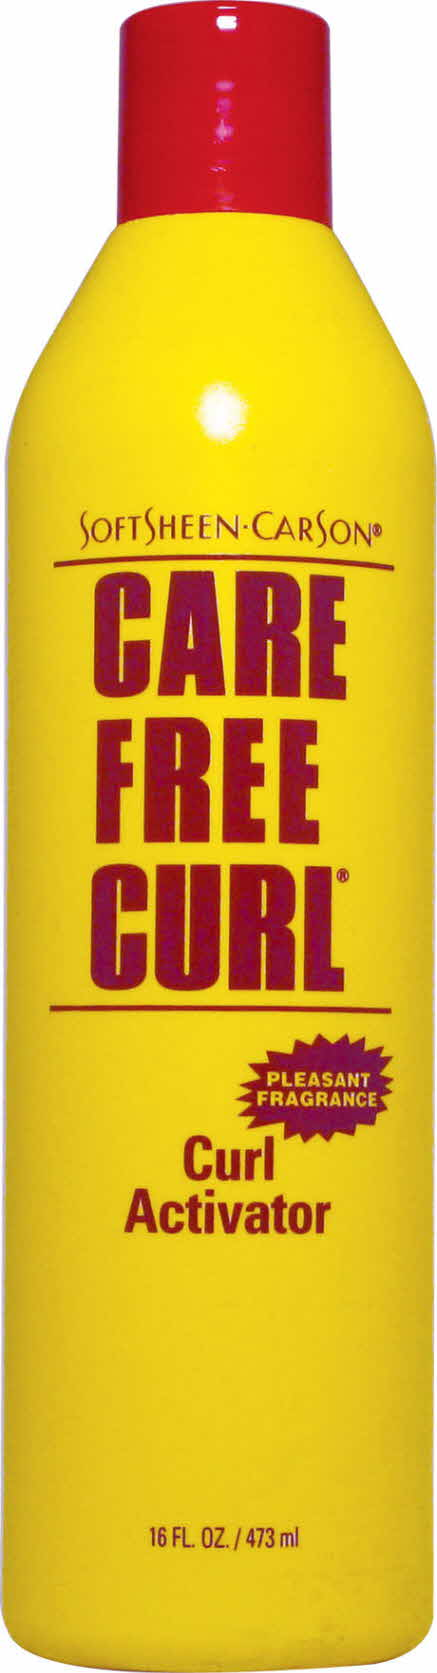 SoftSheen Carson Care Free Curl Activator, 16fl oz